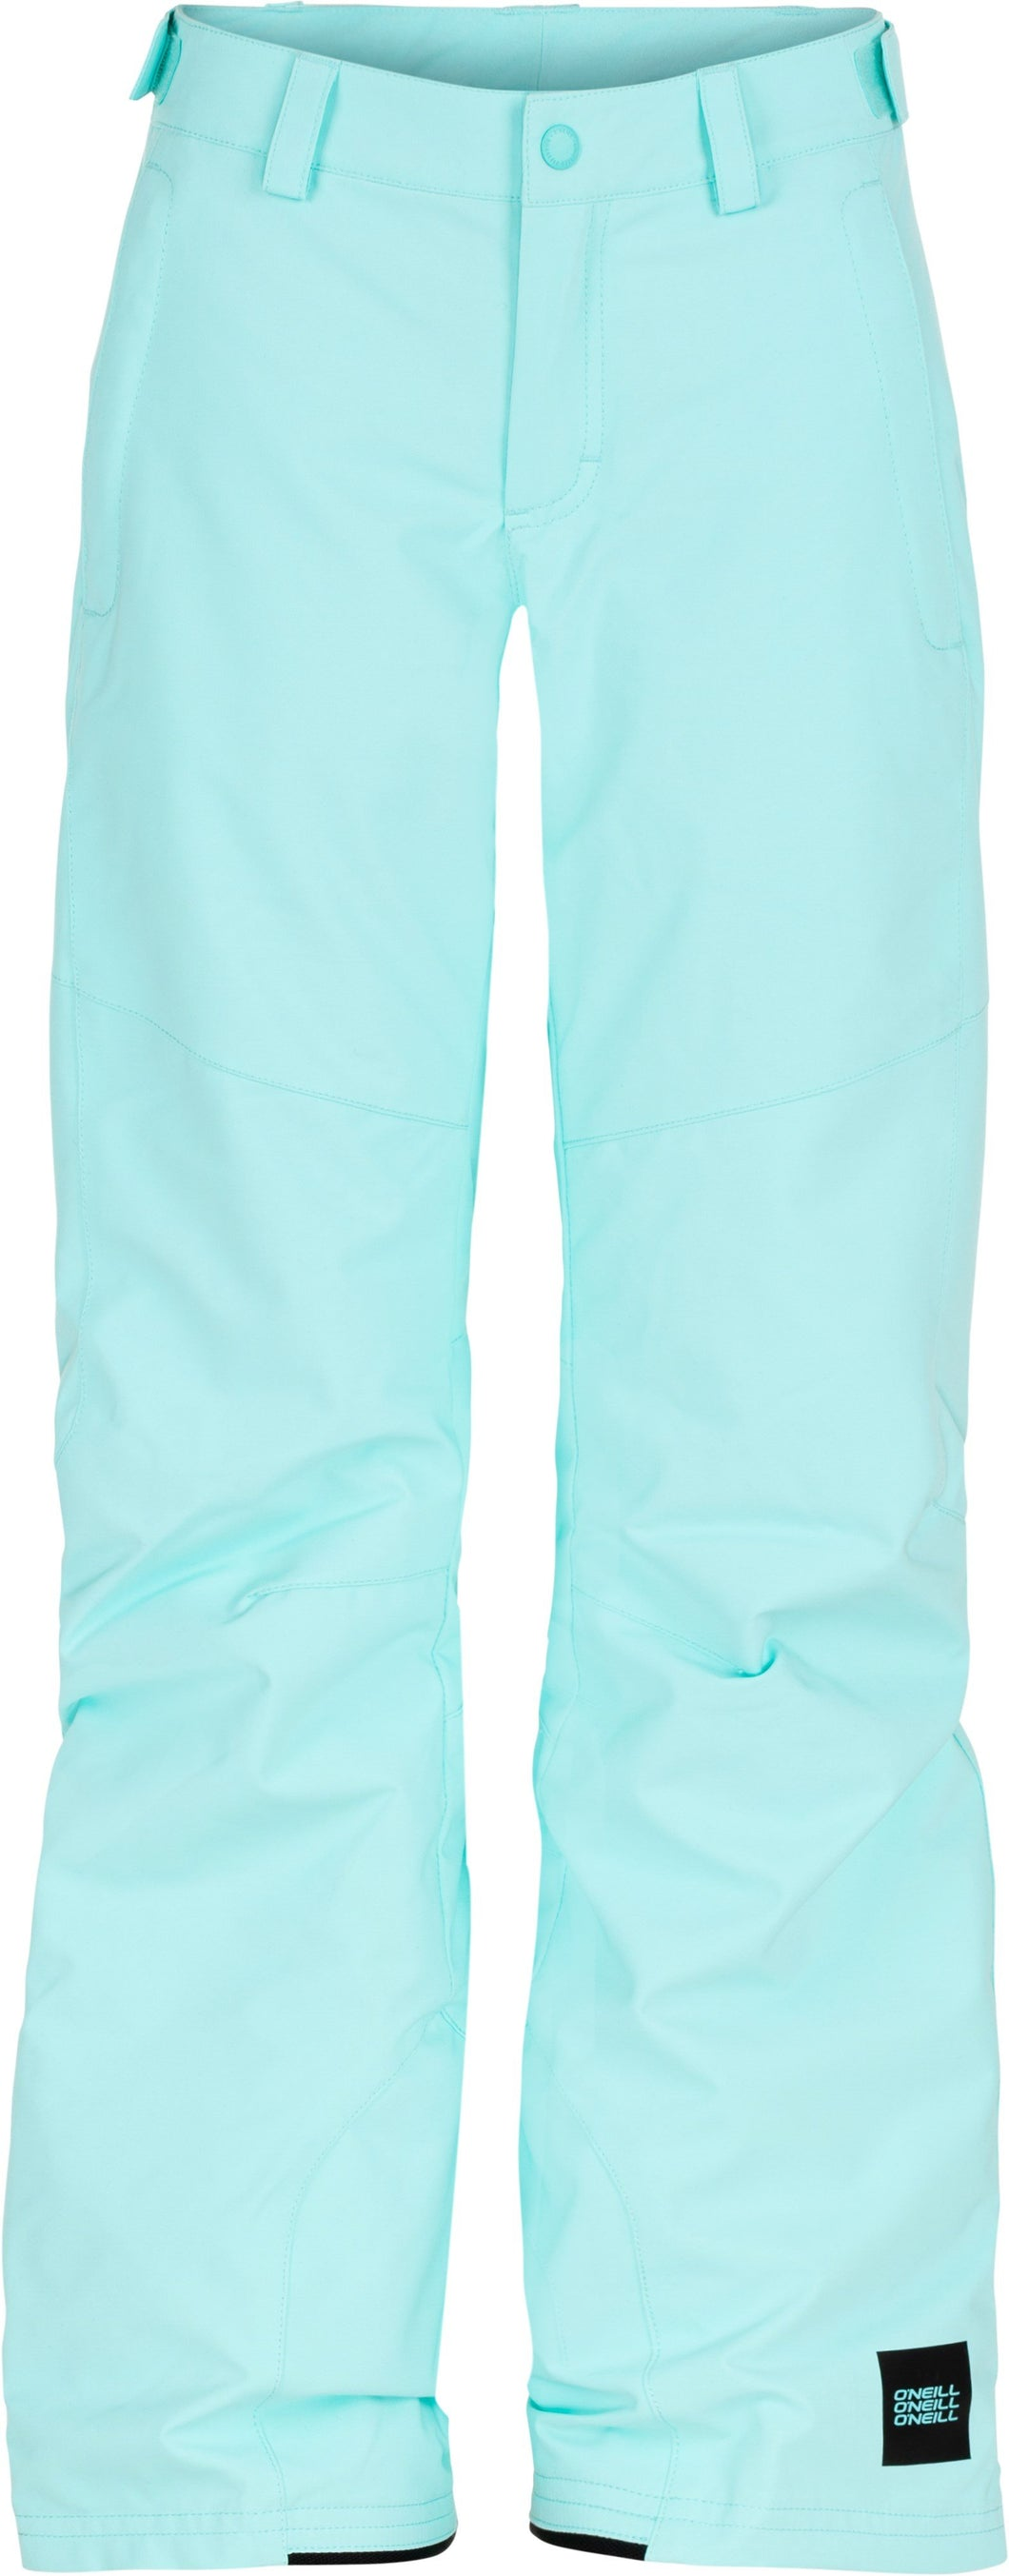 O'Neill Girl's Charm Regular Ski and Snowboard Light Blue Pant Front